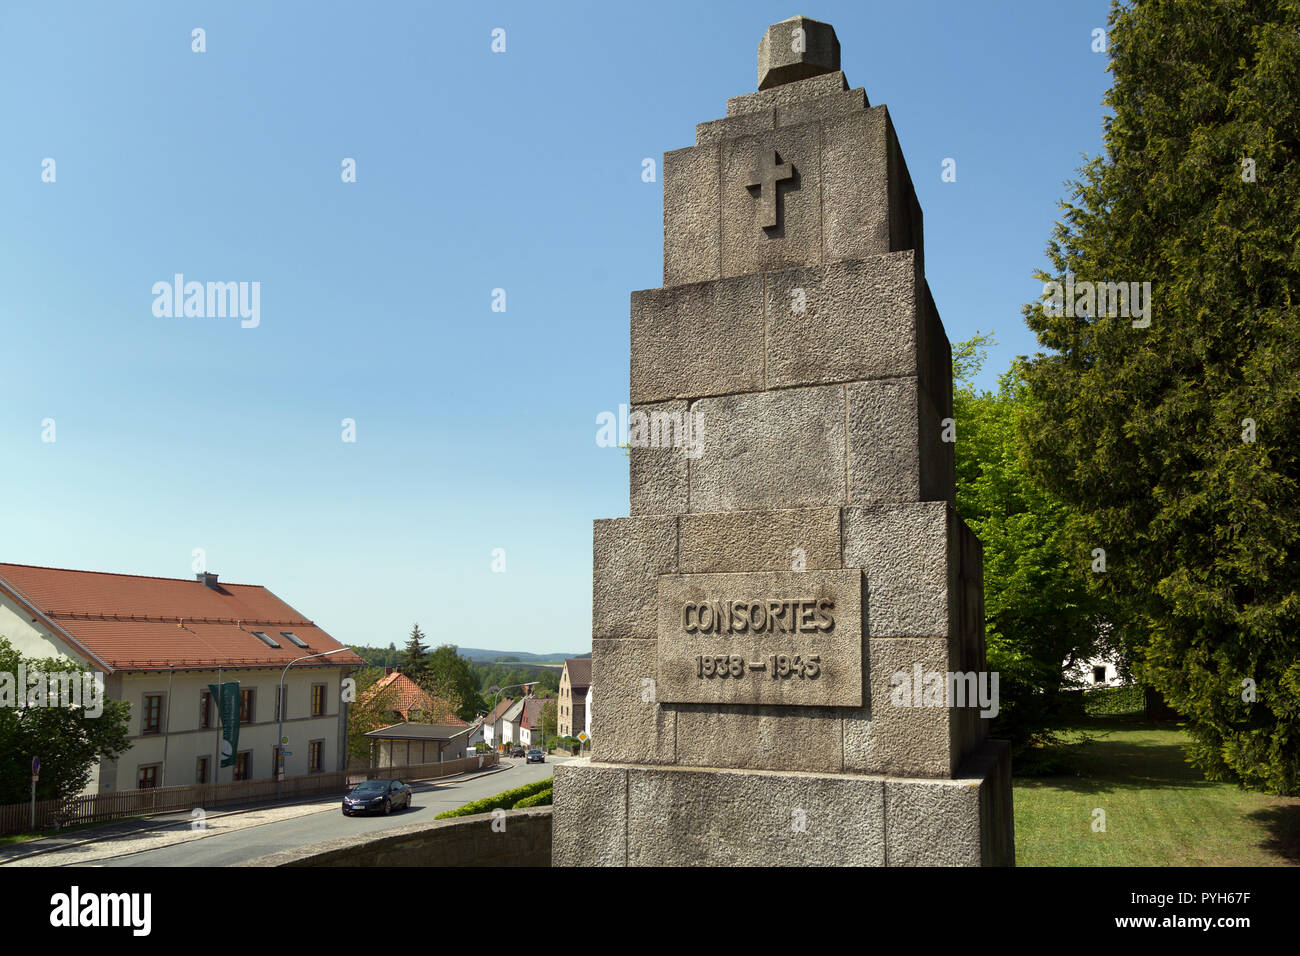 Bavaria, Germany - Honorary cemetery for 121 victims of National Socialist tyranny died shortly after liberation in 1945 - Stock Image